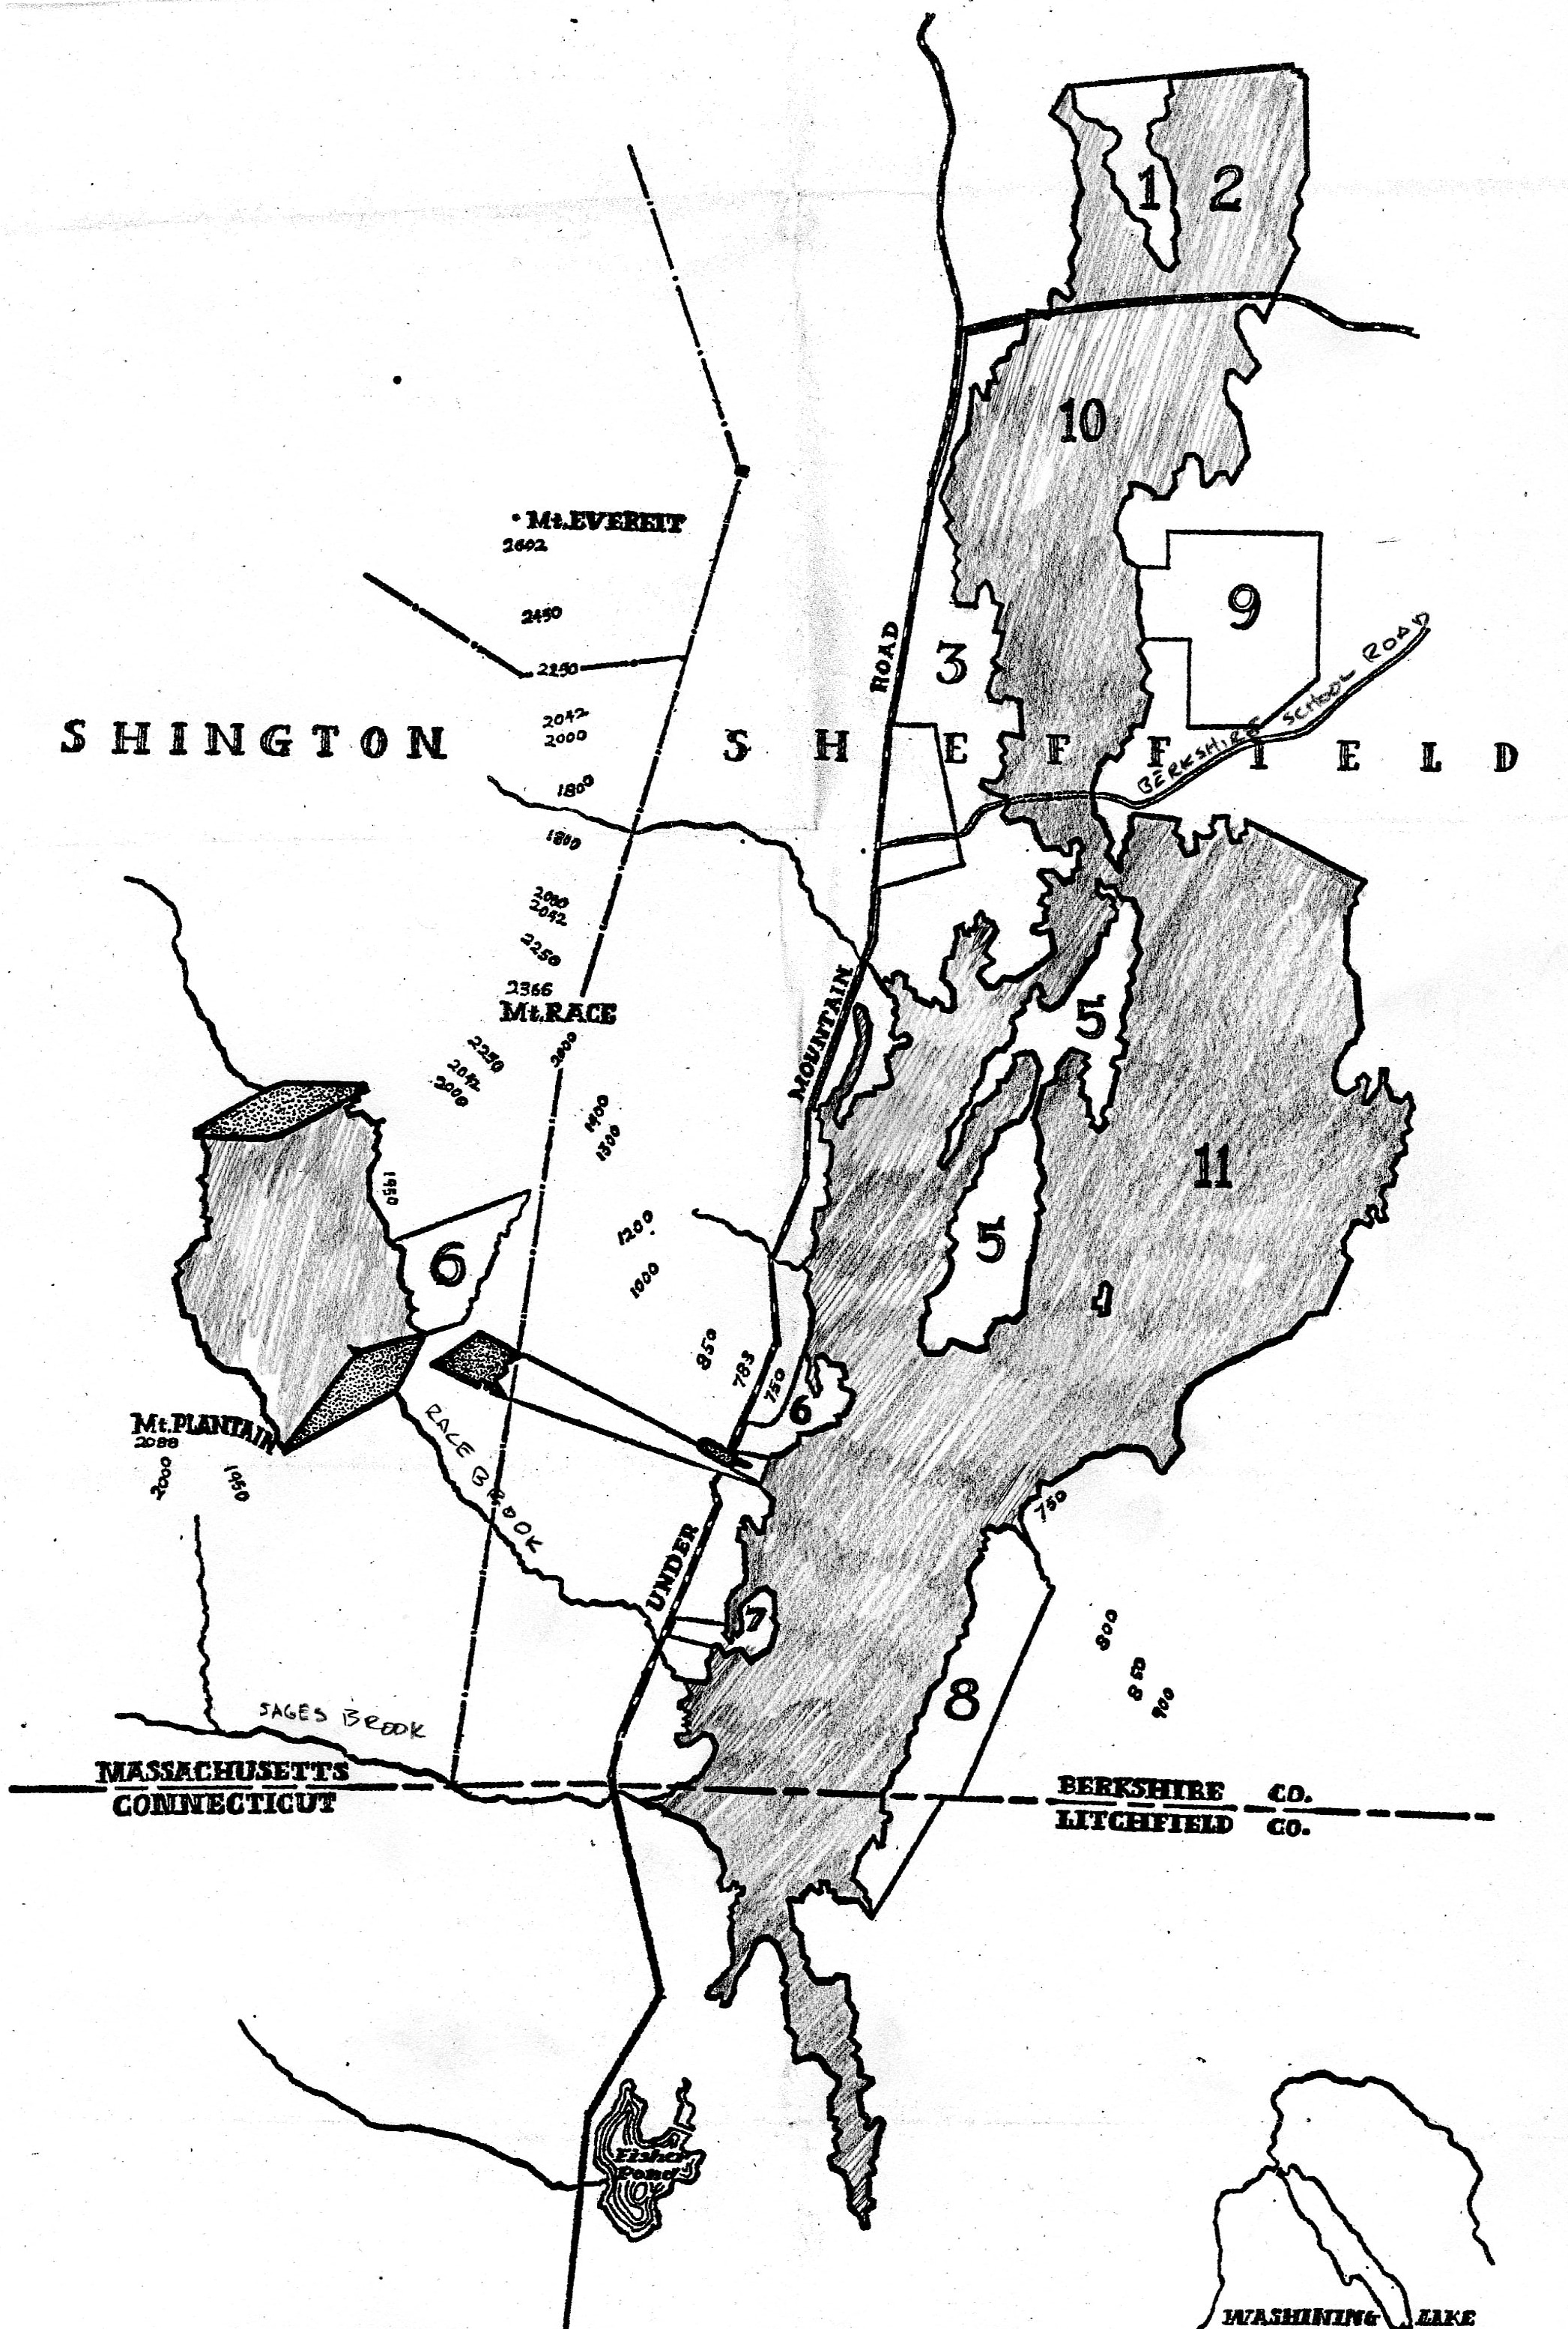 From the Berkshire Eagle of1970 a sketch of the area (shaded) in Sheffield that would have been flooded by the pump storage project.